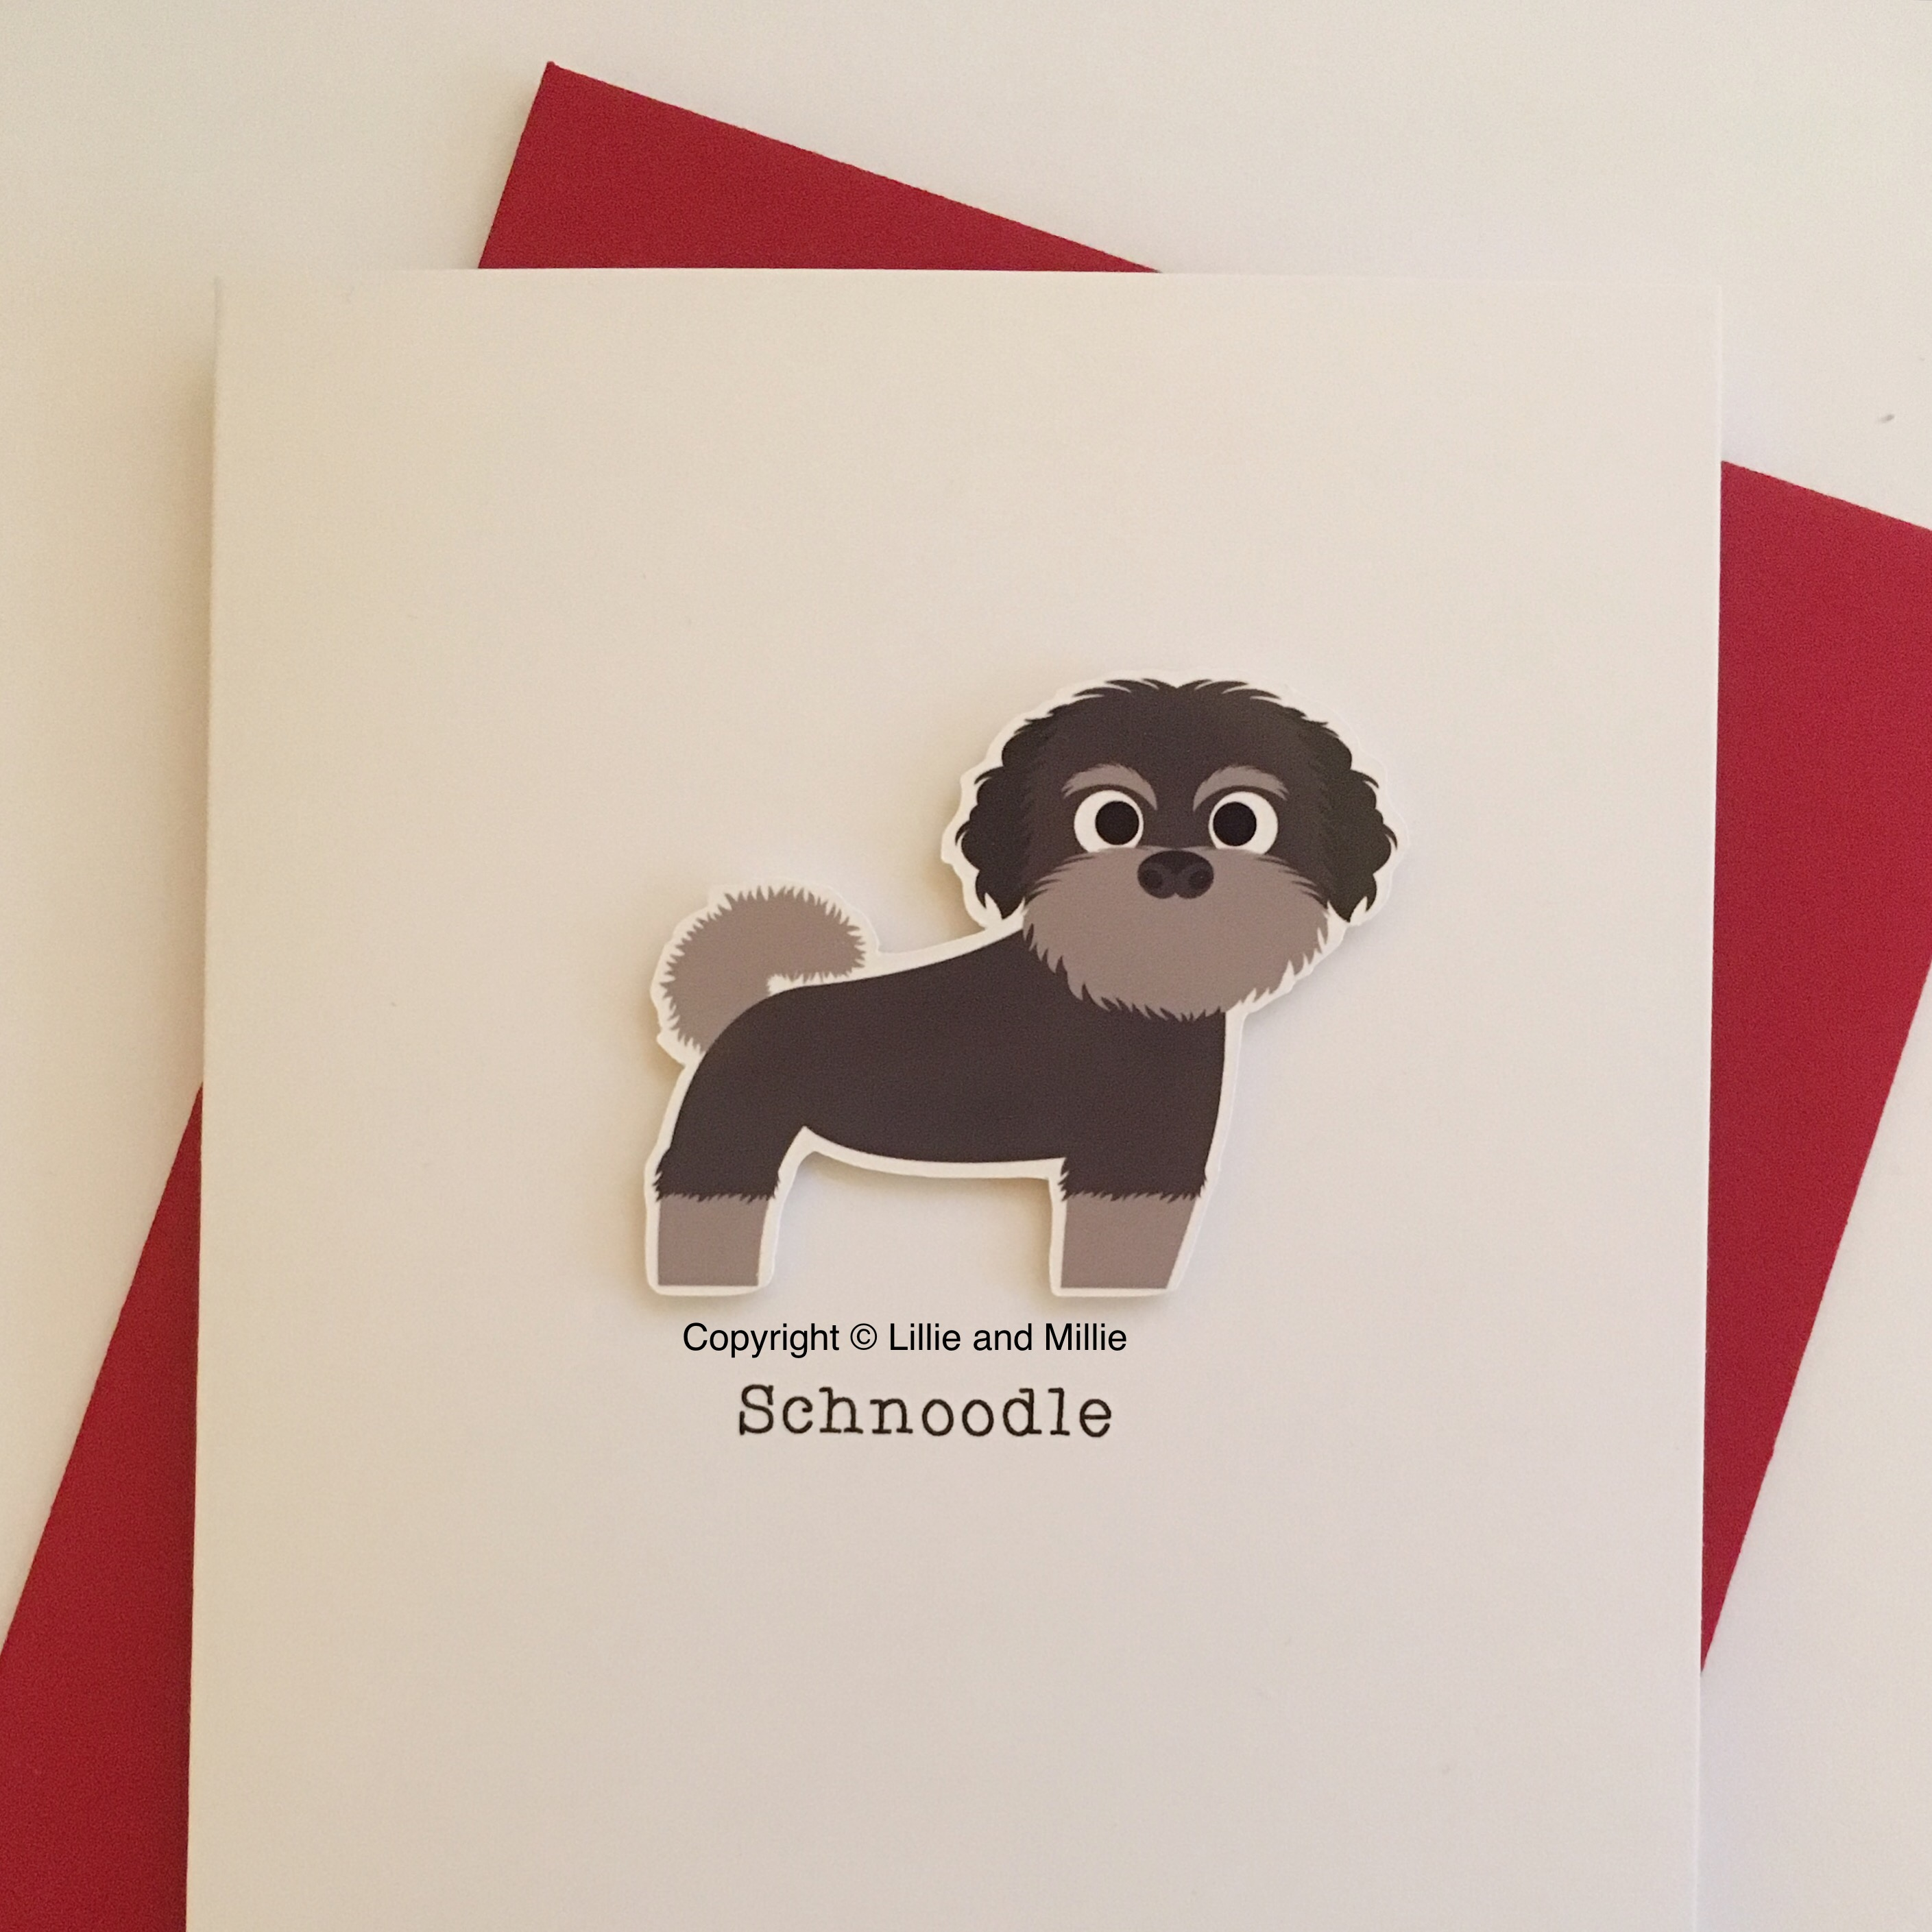 Schnoodle Dog Greetings Card